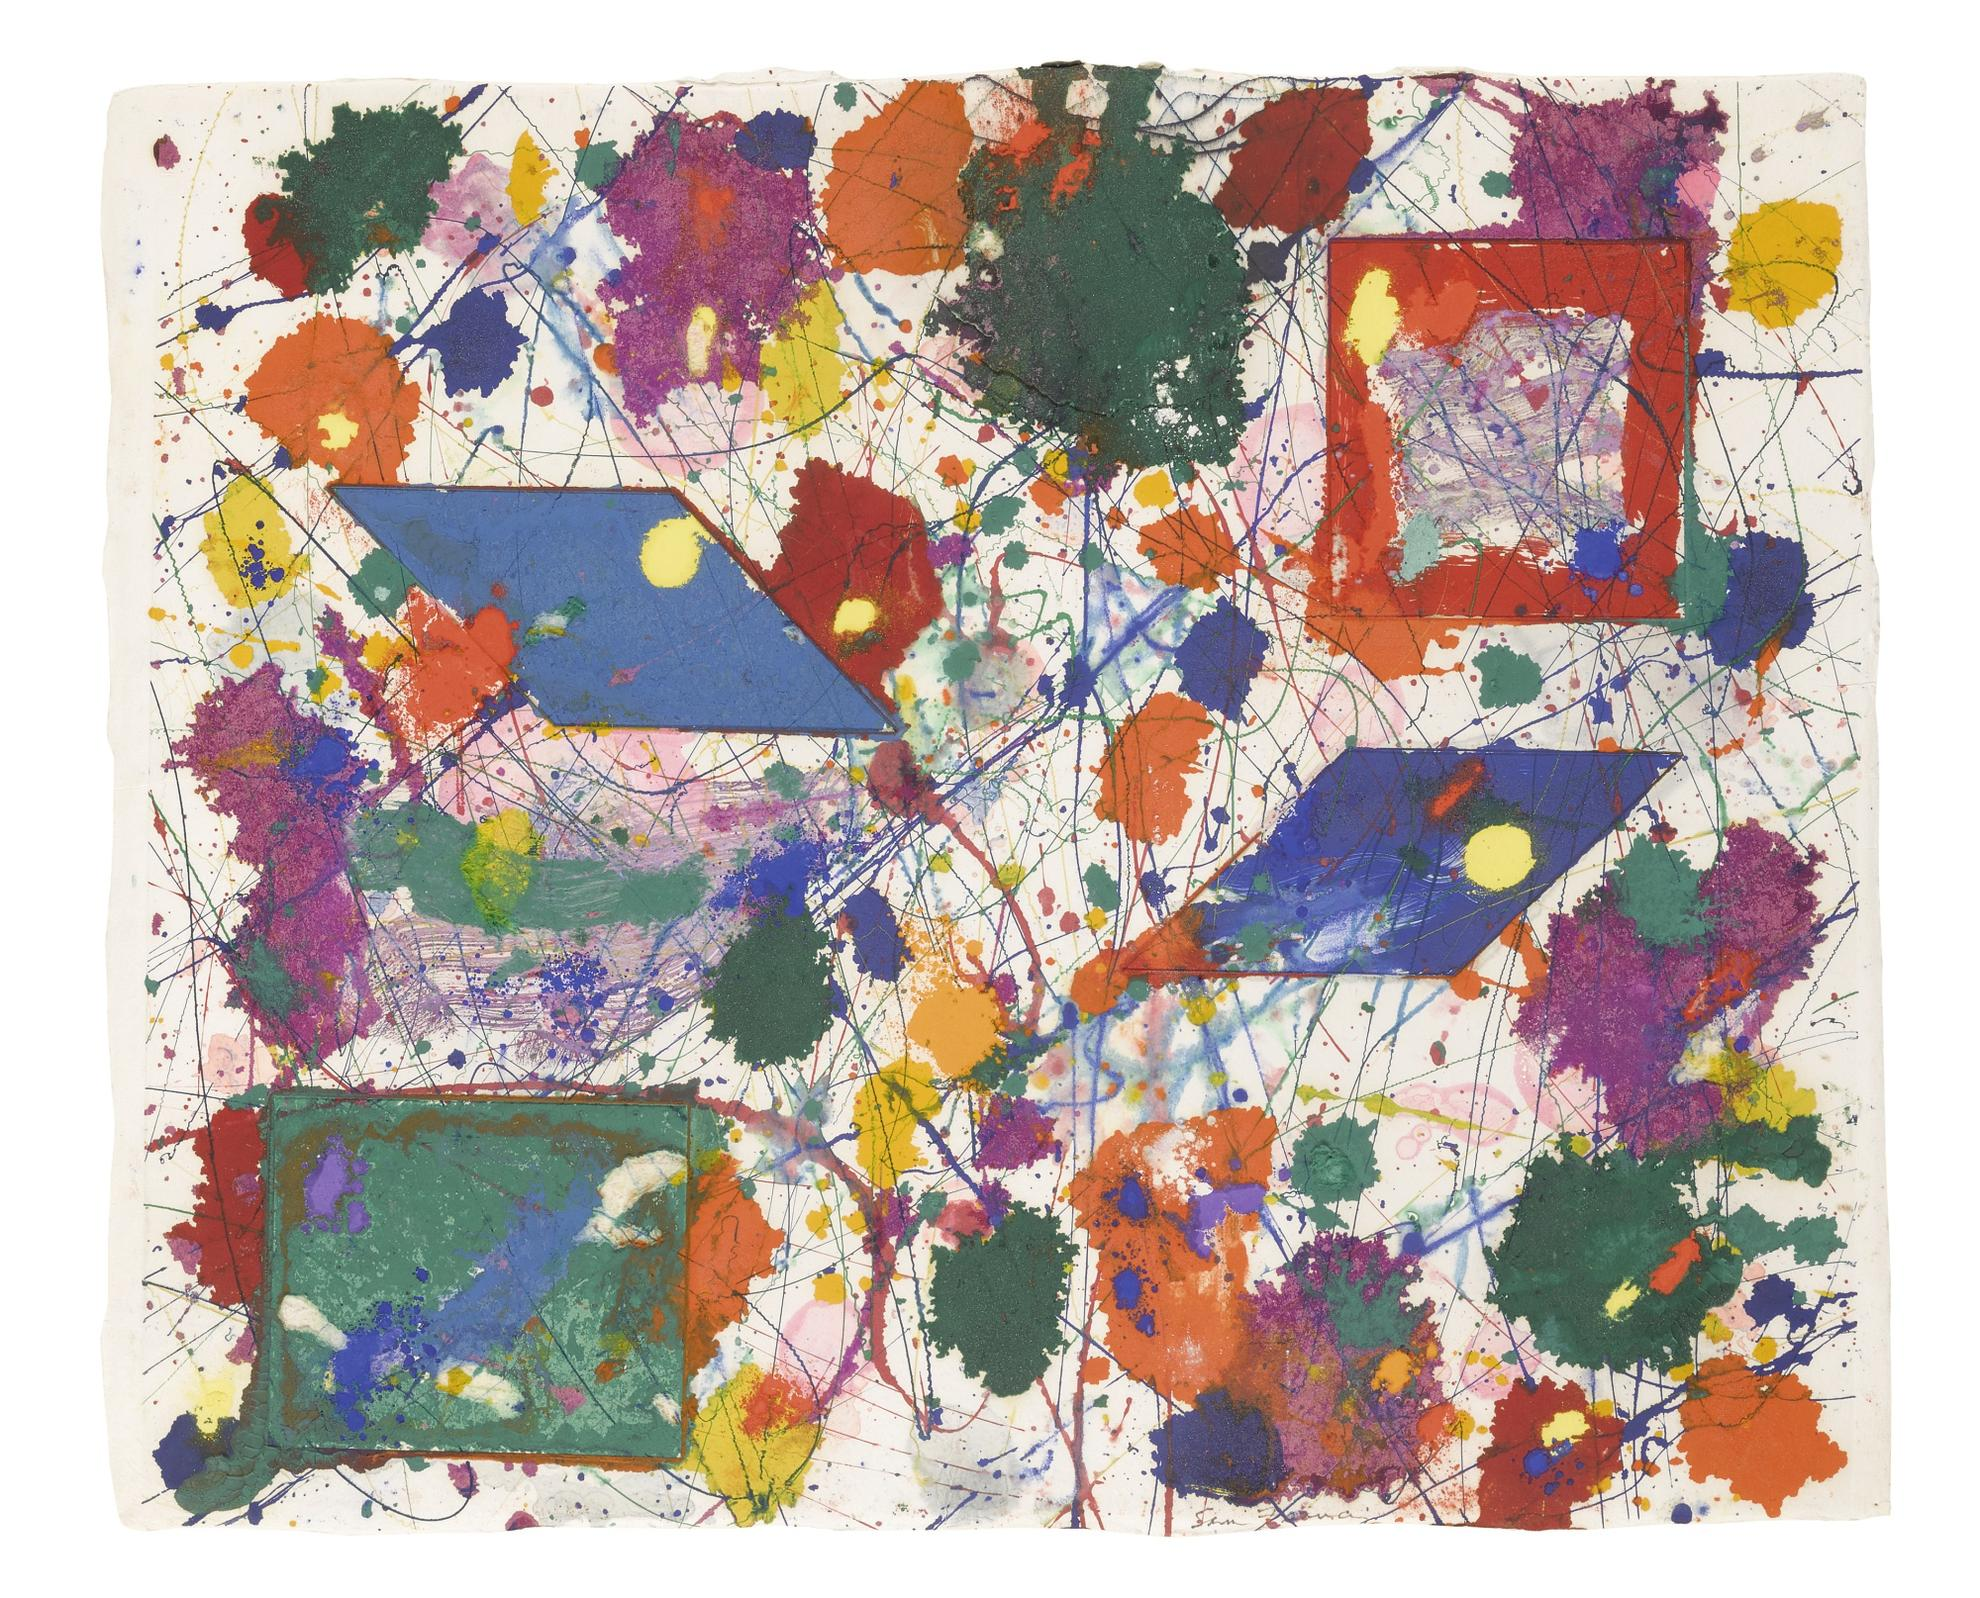 Sam Francis-Untitled (Sfm 81-015)-1981